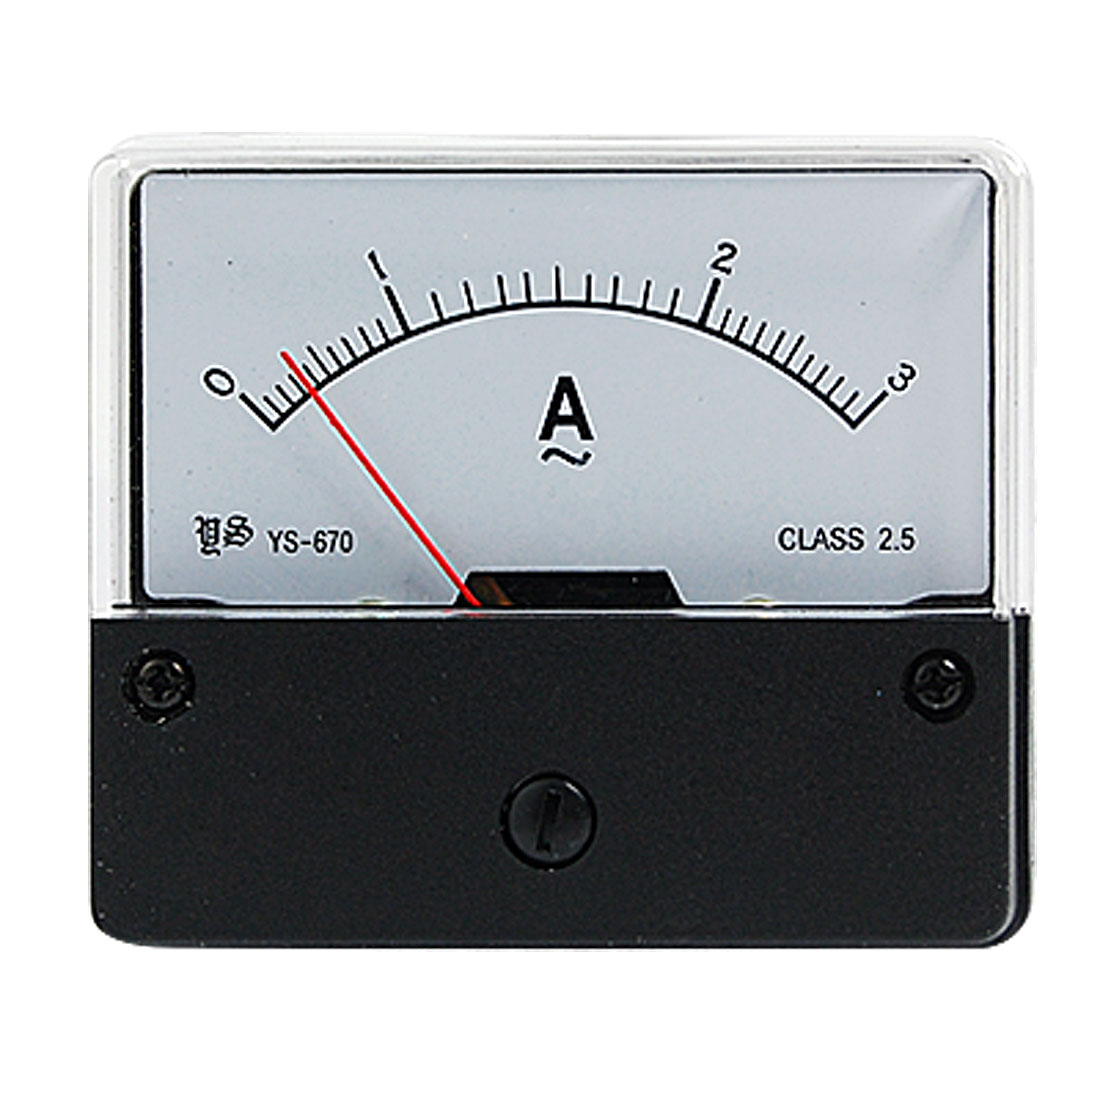 AC 0-3A Current Range Analog Panel Meter Ammeter YS-670